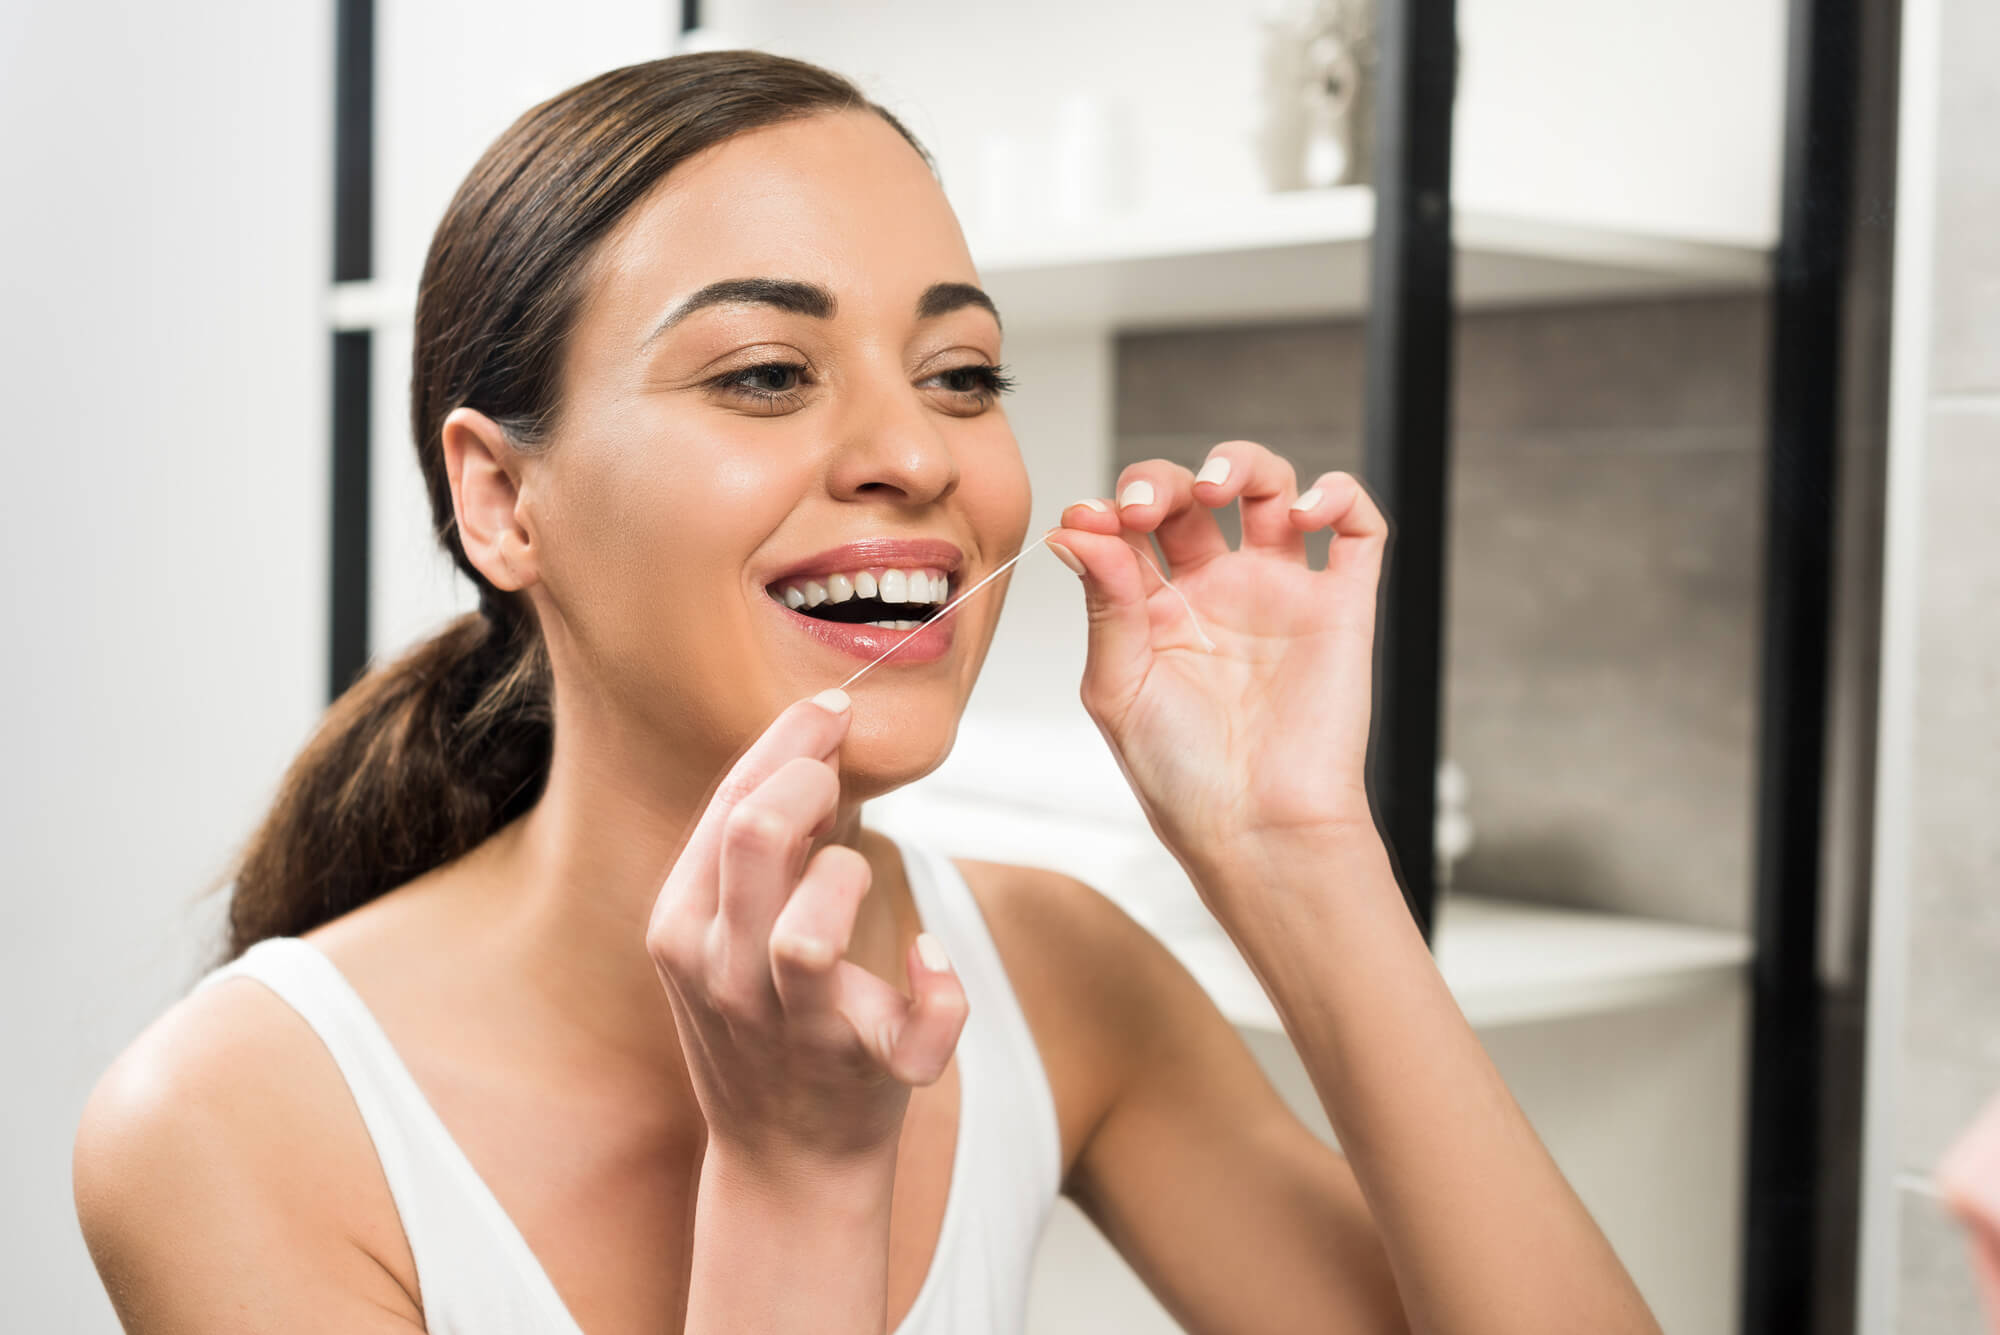 A smiling woman flossing in the mirror after visiting the Family Dentist in South Florida